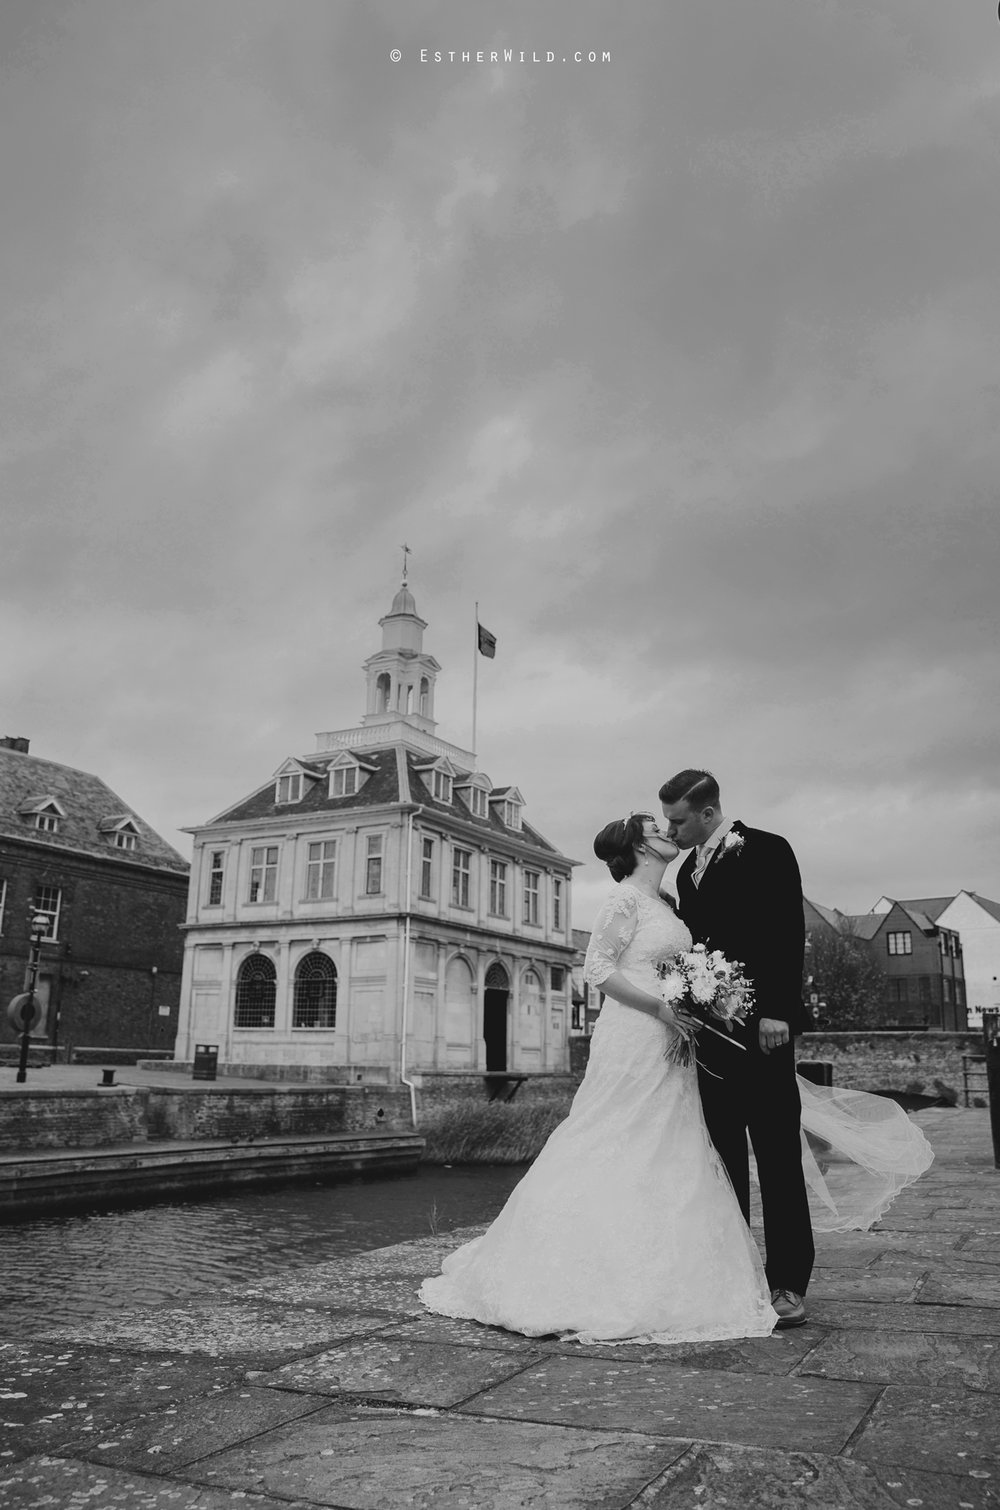 Kings_Lynn_Town_Hall_Wedding_Marry_In_Norfolk_Wedding_Esther_Wild_Photographer_IMG_5705-1.jpg